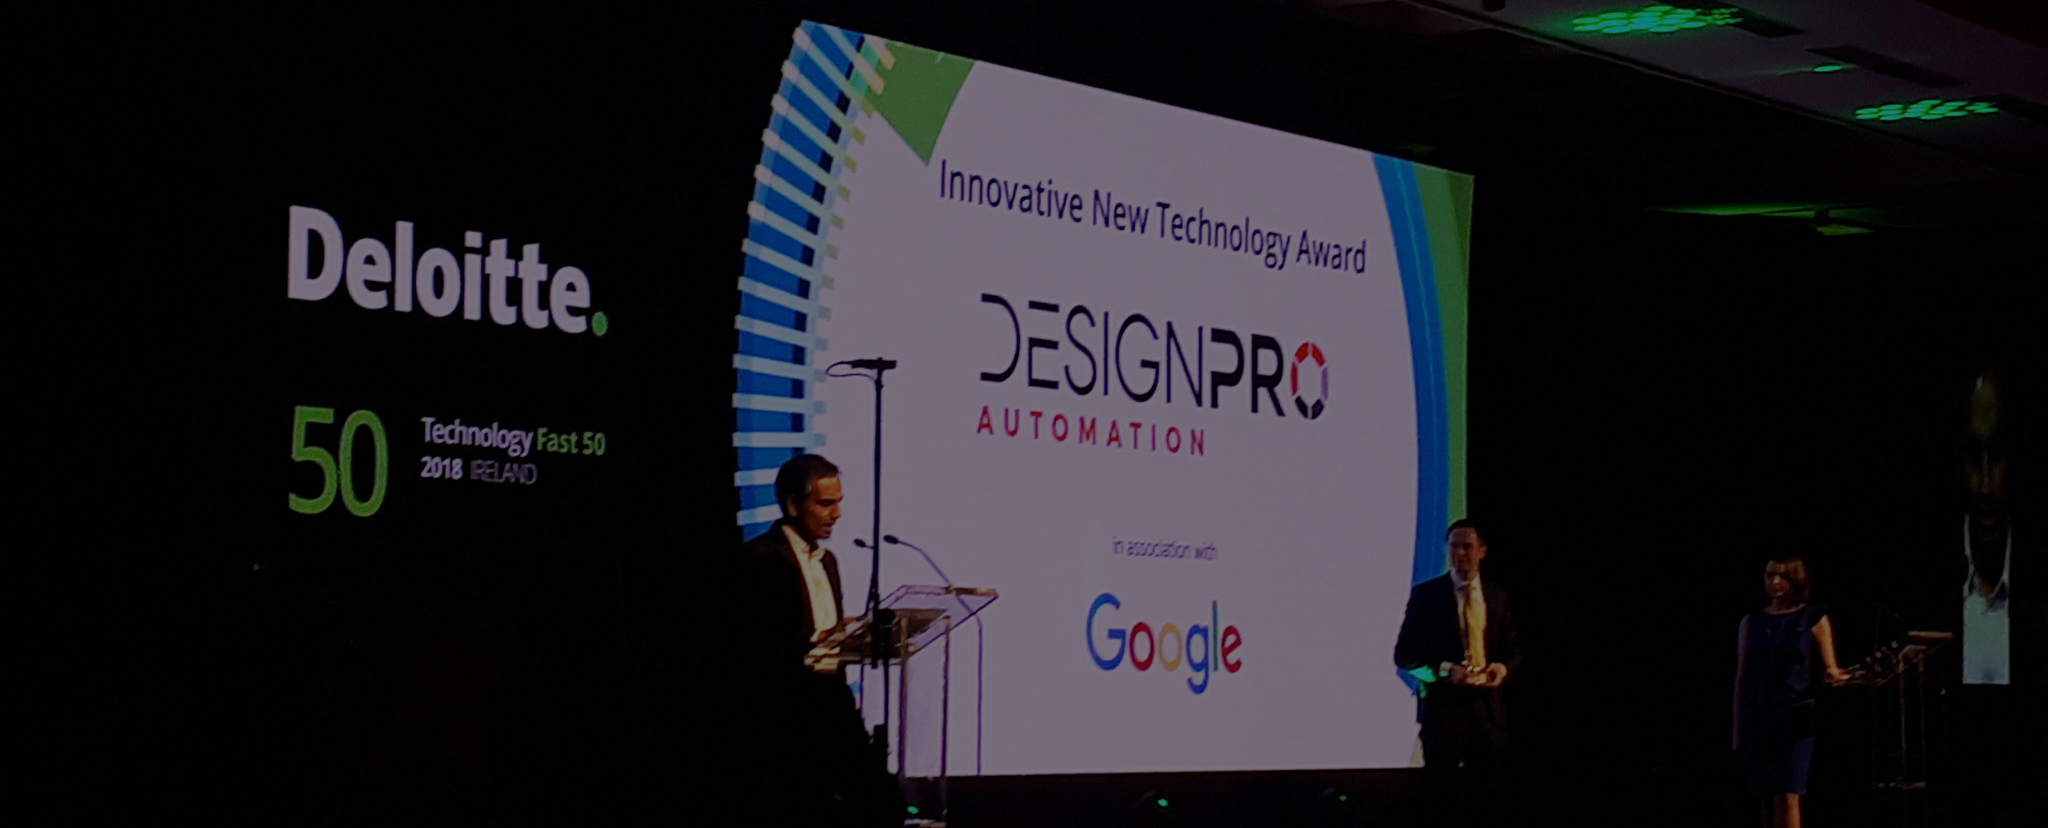 Our Innovative Design Takes Top Technology Award At Deloittes Fast 50